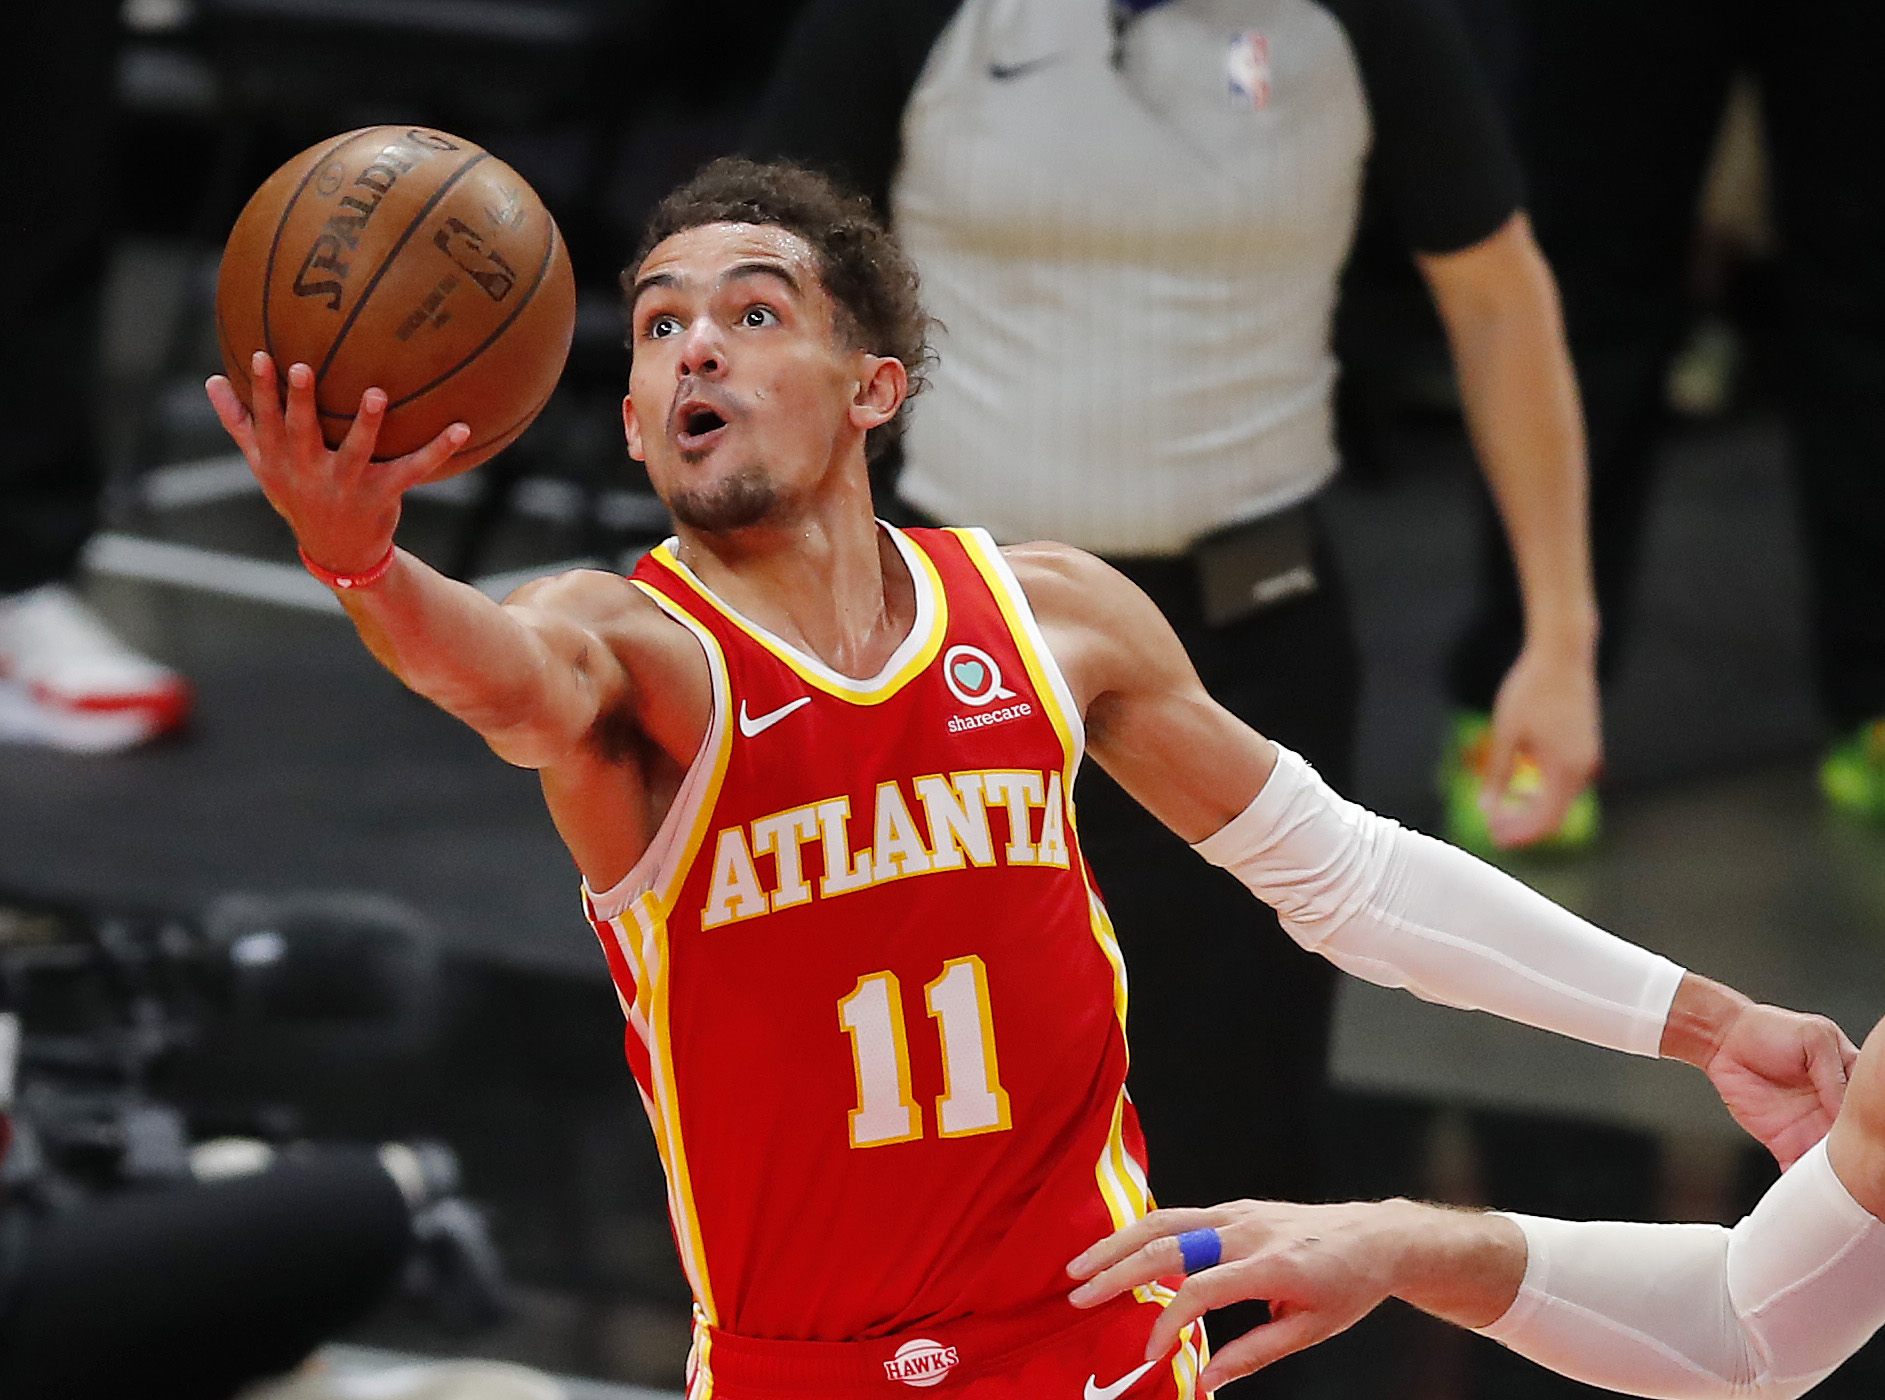 Trae Young #11 of the Atlanta Hawks goes up for a shot against the Milwaukee Bucks during the second half in game three of the Eastern Conference Finals at State Farm Arena on June 27, 2021 in Atlanta, Georgia.